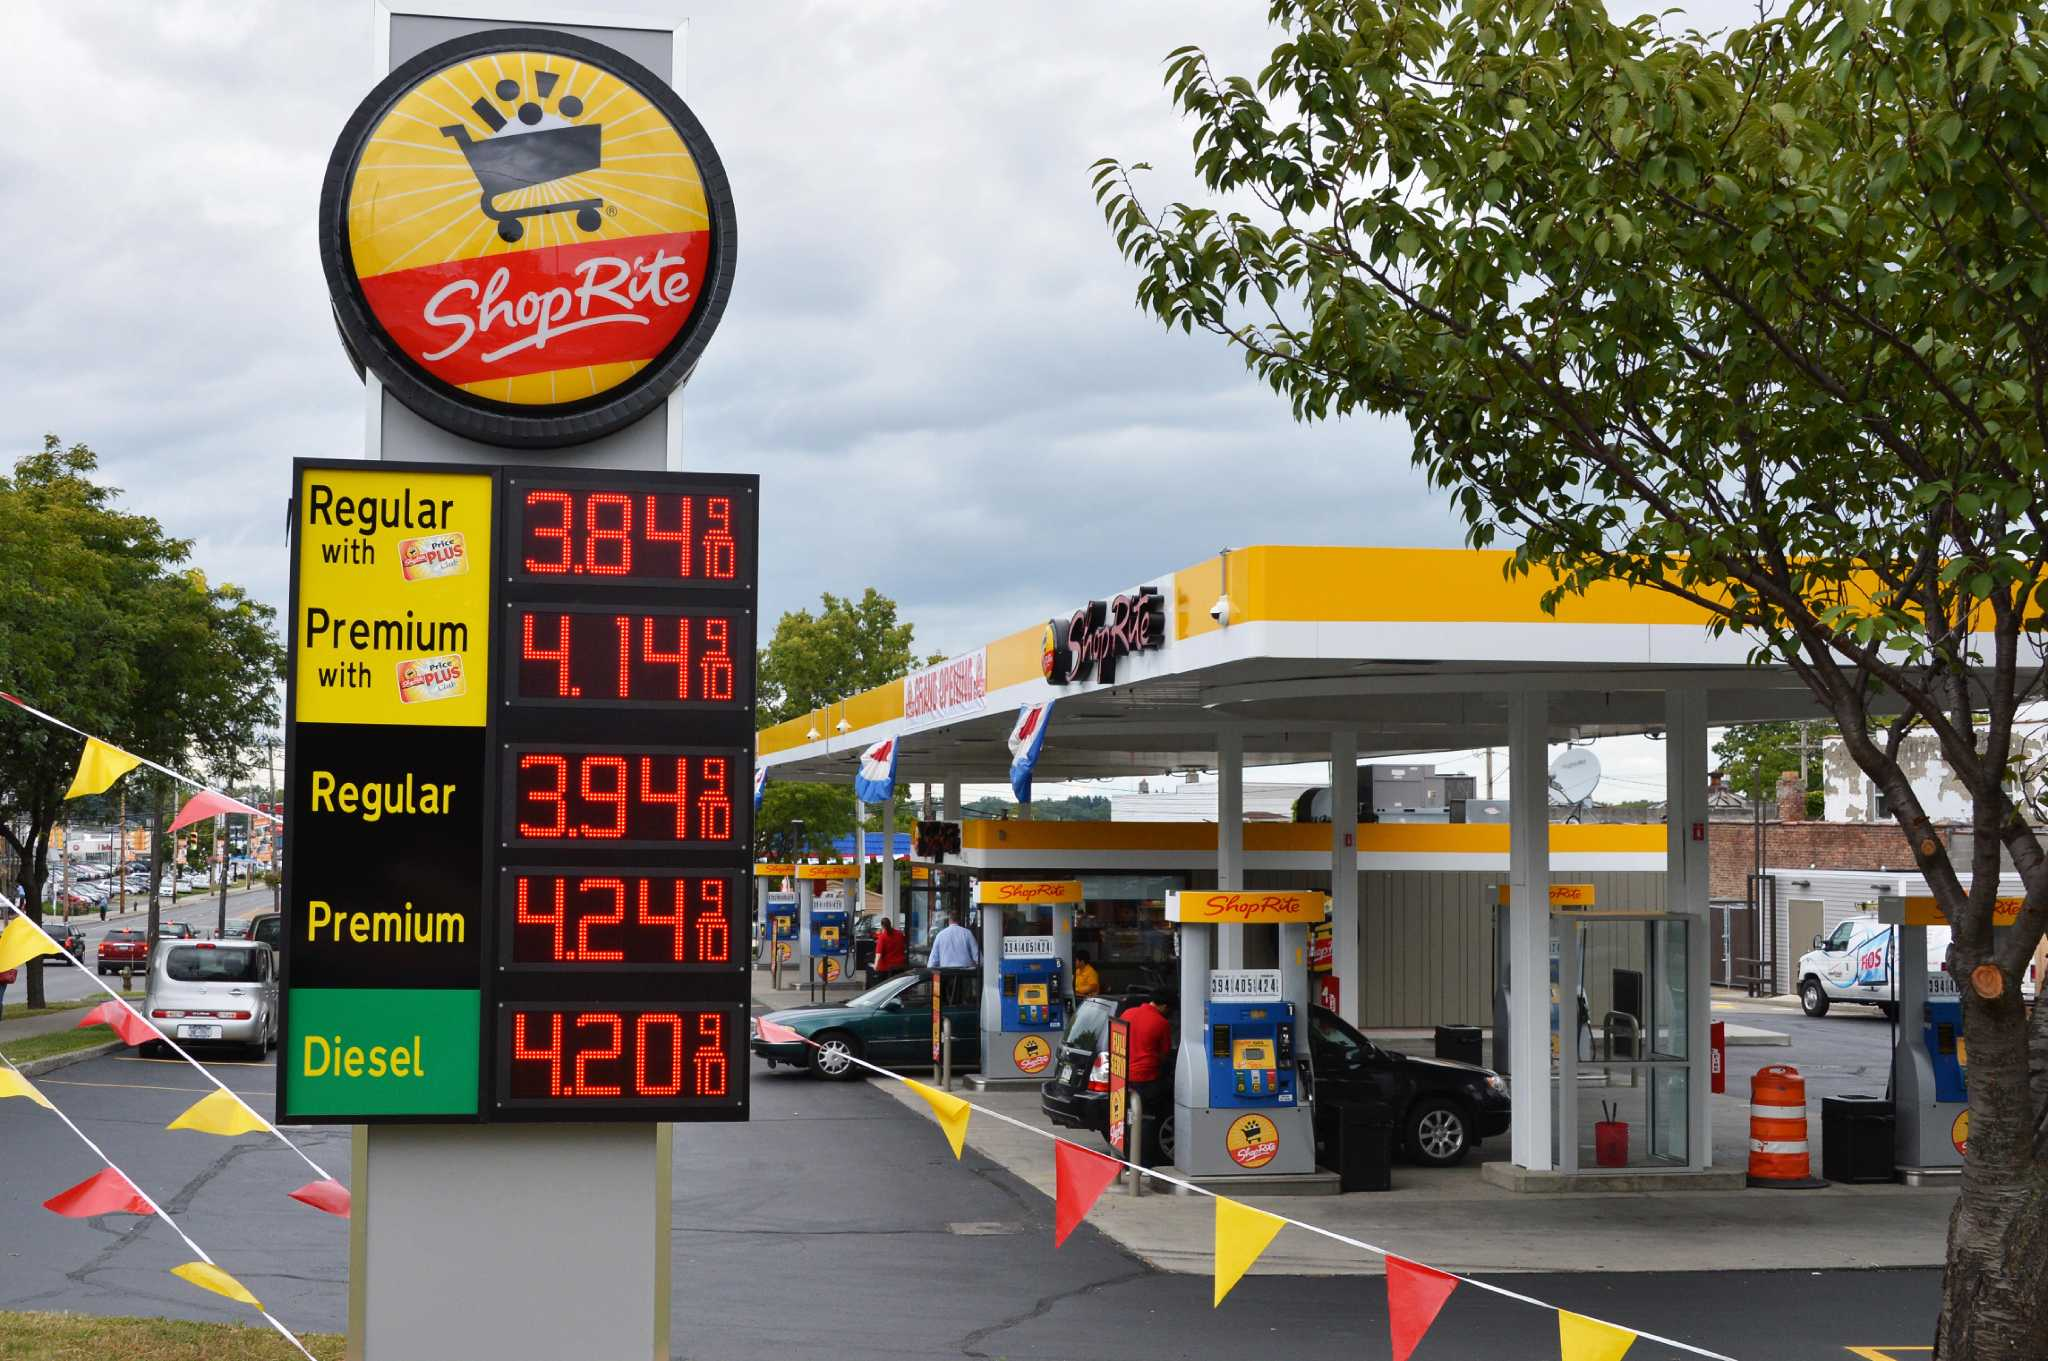 shoprite gas station open for business